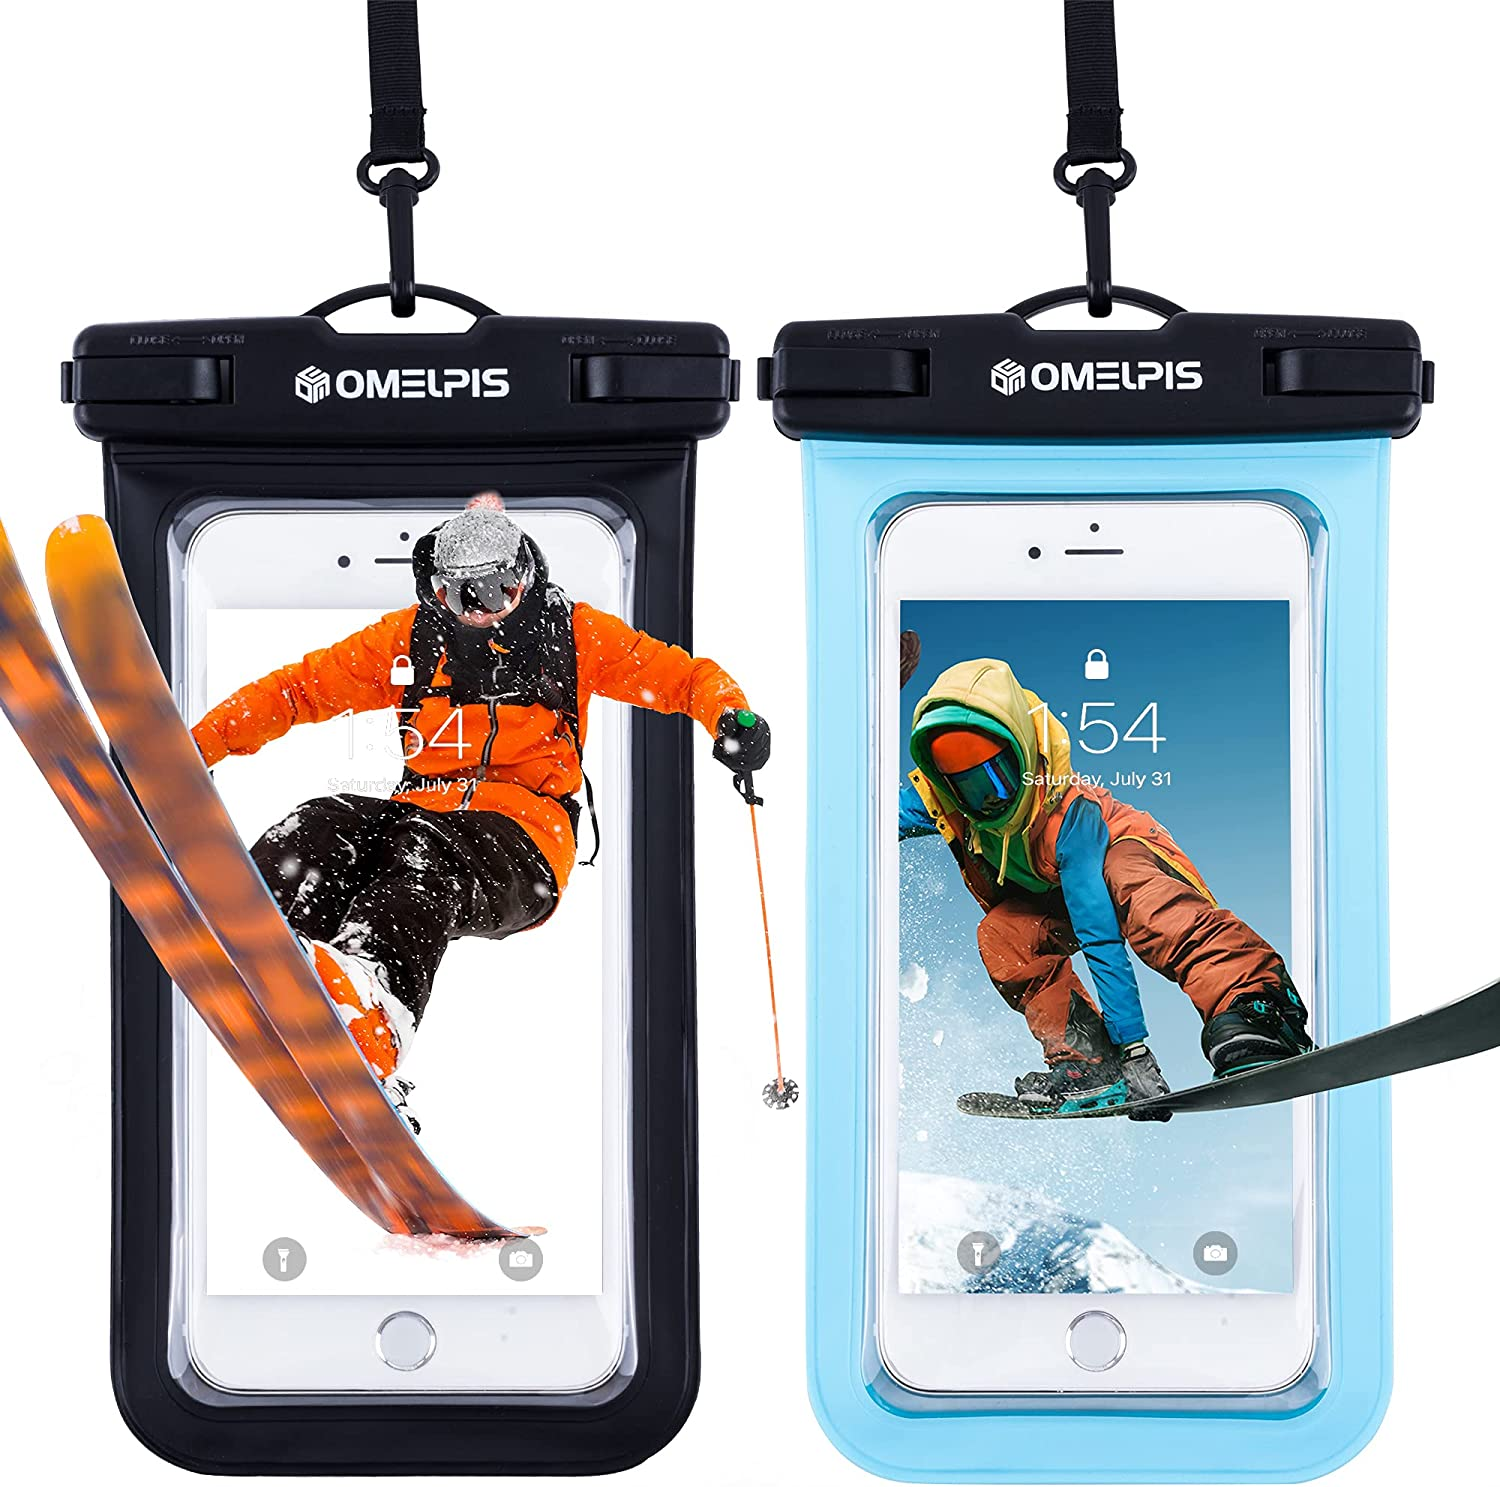 OMELPIS Universal Snowproof Phone Pouch, Waterproof Case for iPhone 12 11 Mini Pro Max XR 8 Plus, Samsung, LG, All Devices up to 7'', Underwater Cellphone Dry Bag for Skiing/Diving/Kayak -2 Pack